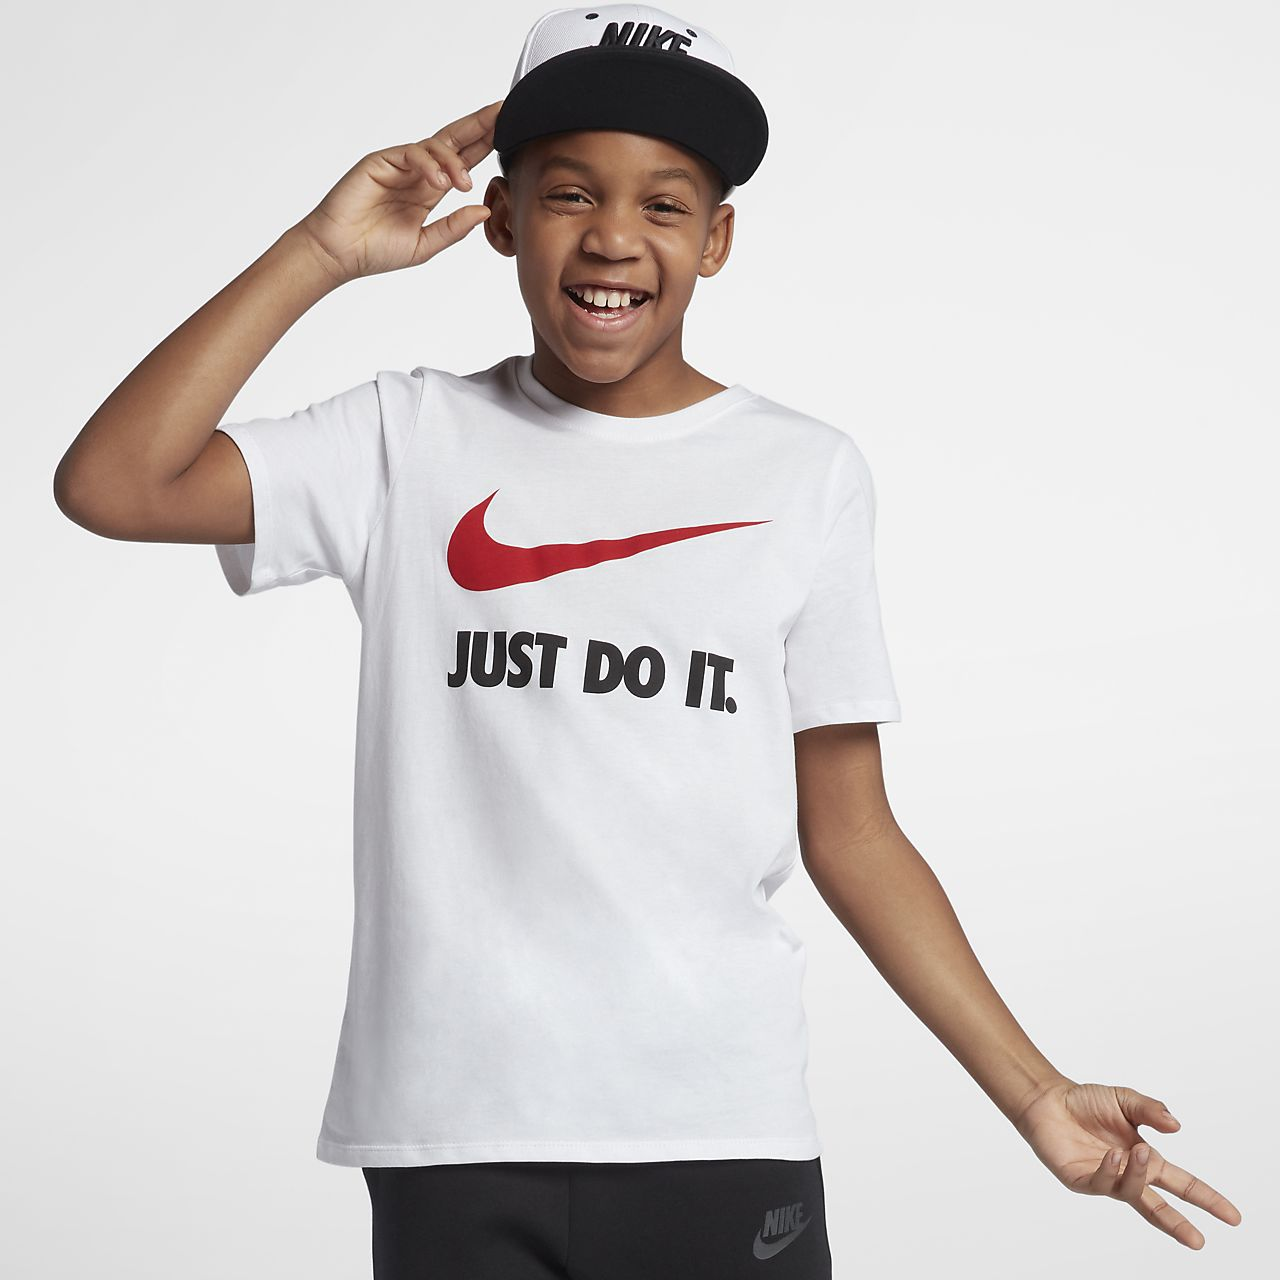 06fb38a576eb4 Nike Just Do It Swoosh Older Kids  (Boys ) T-Shirt. Nike.com CA